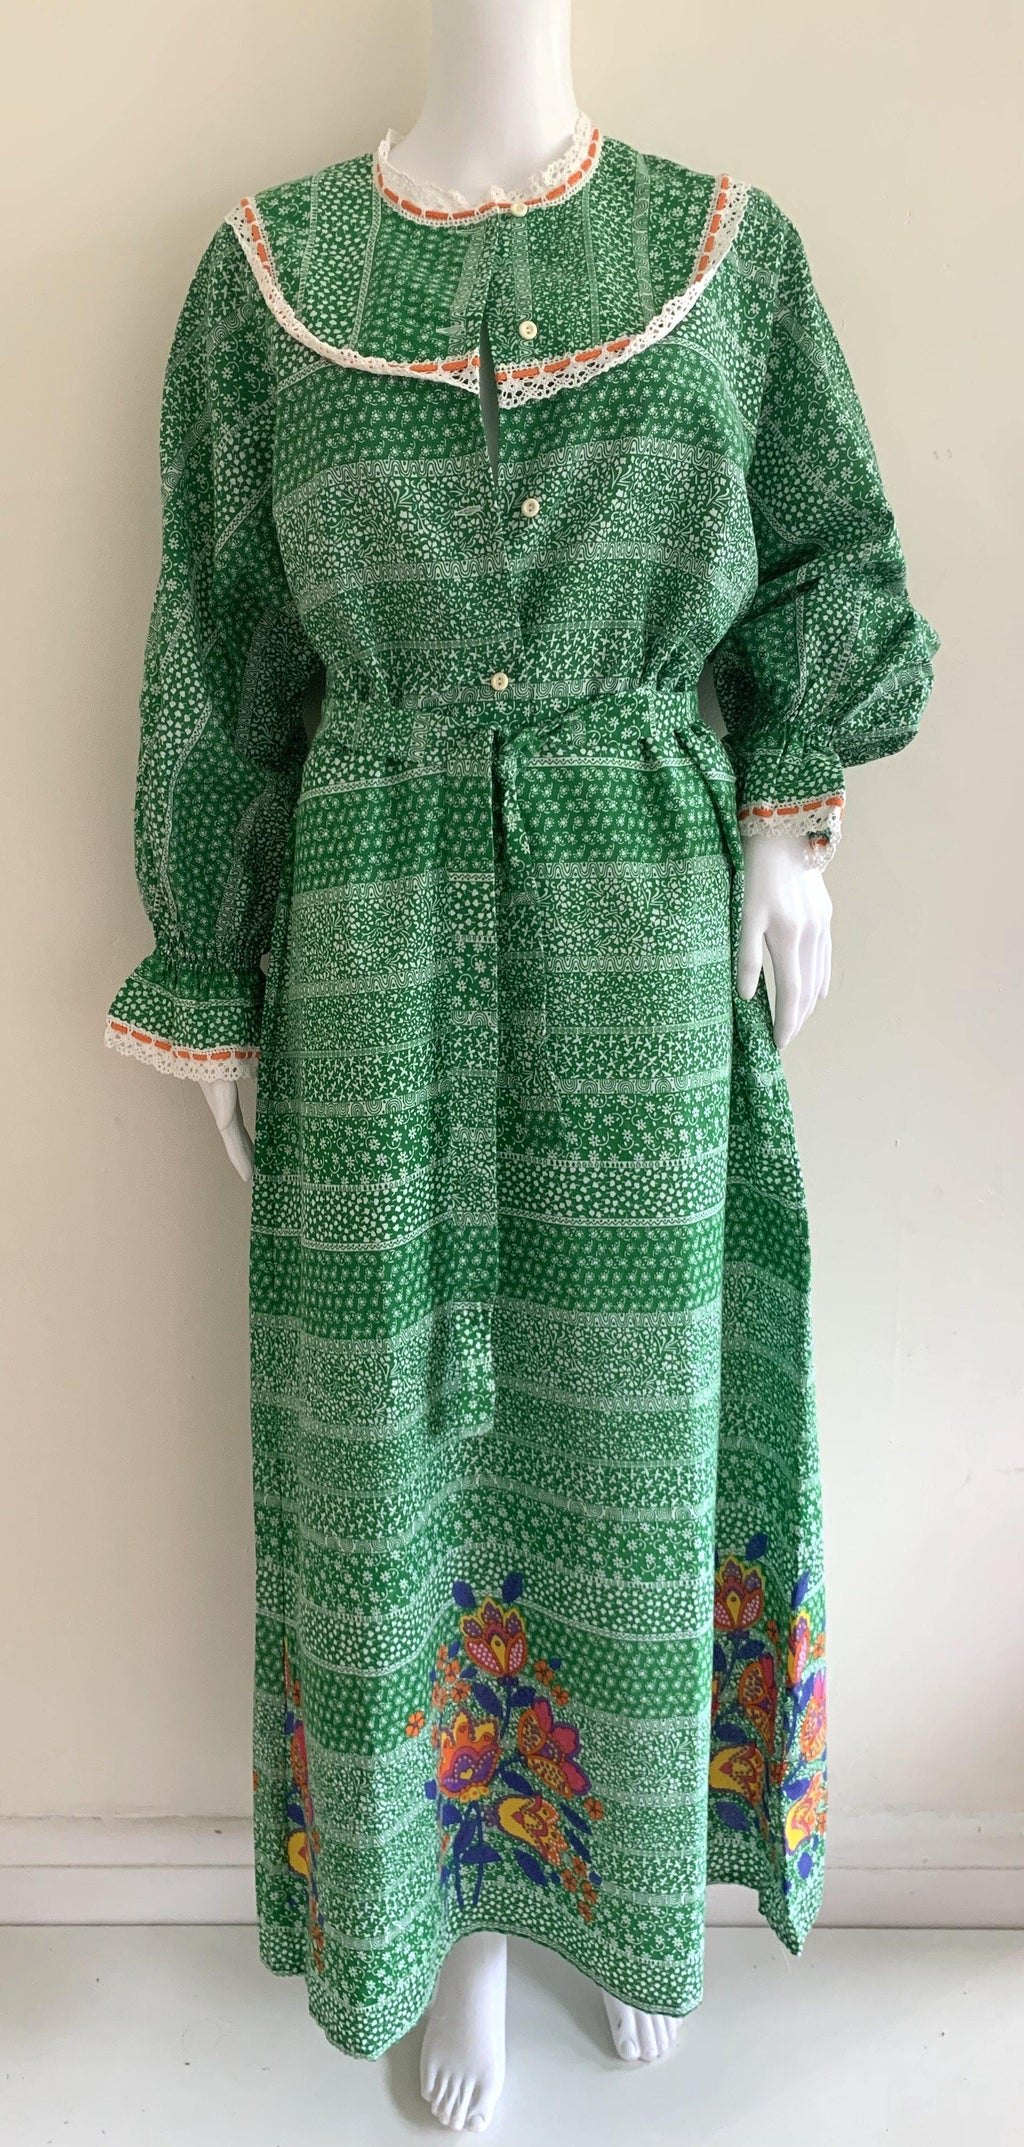 - ONE OF A KIND - Vintage 1970s Cotton Maxi